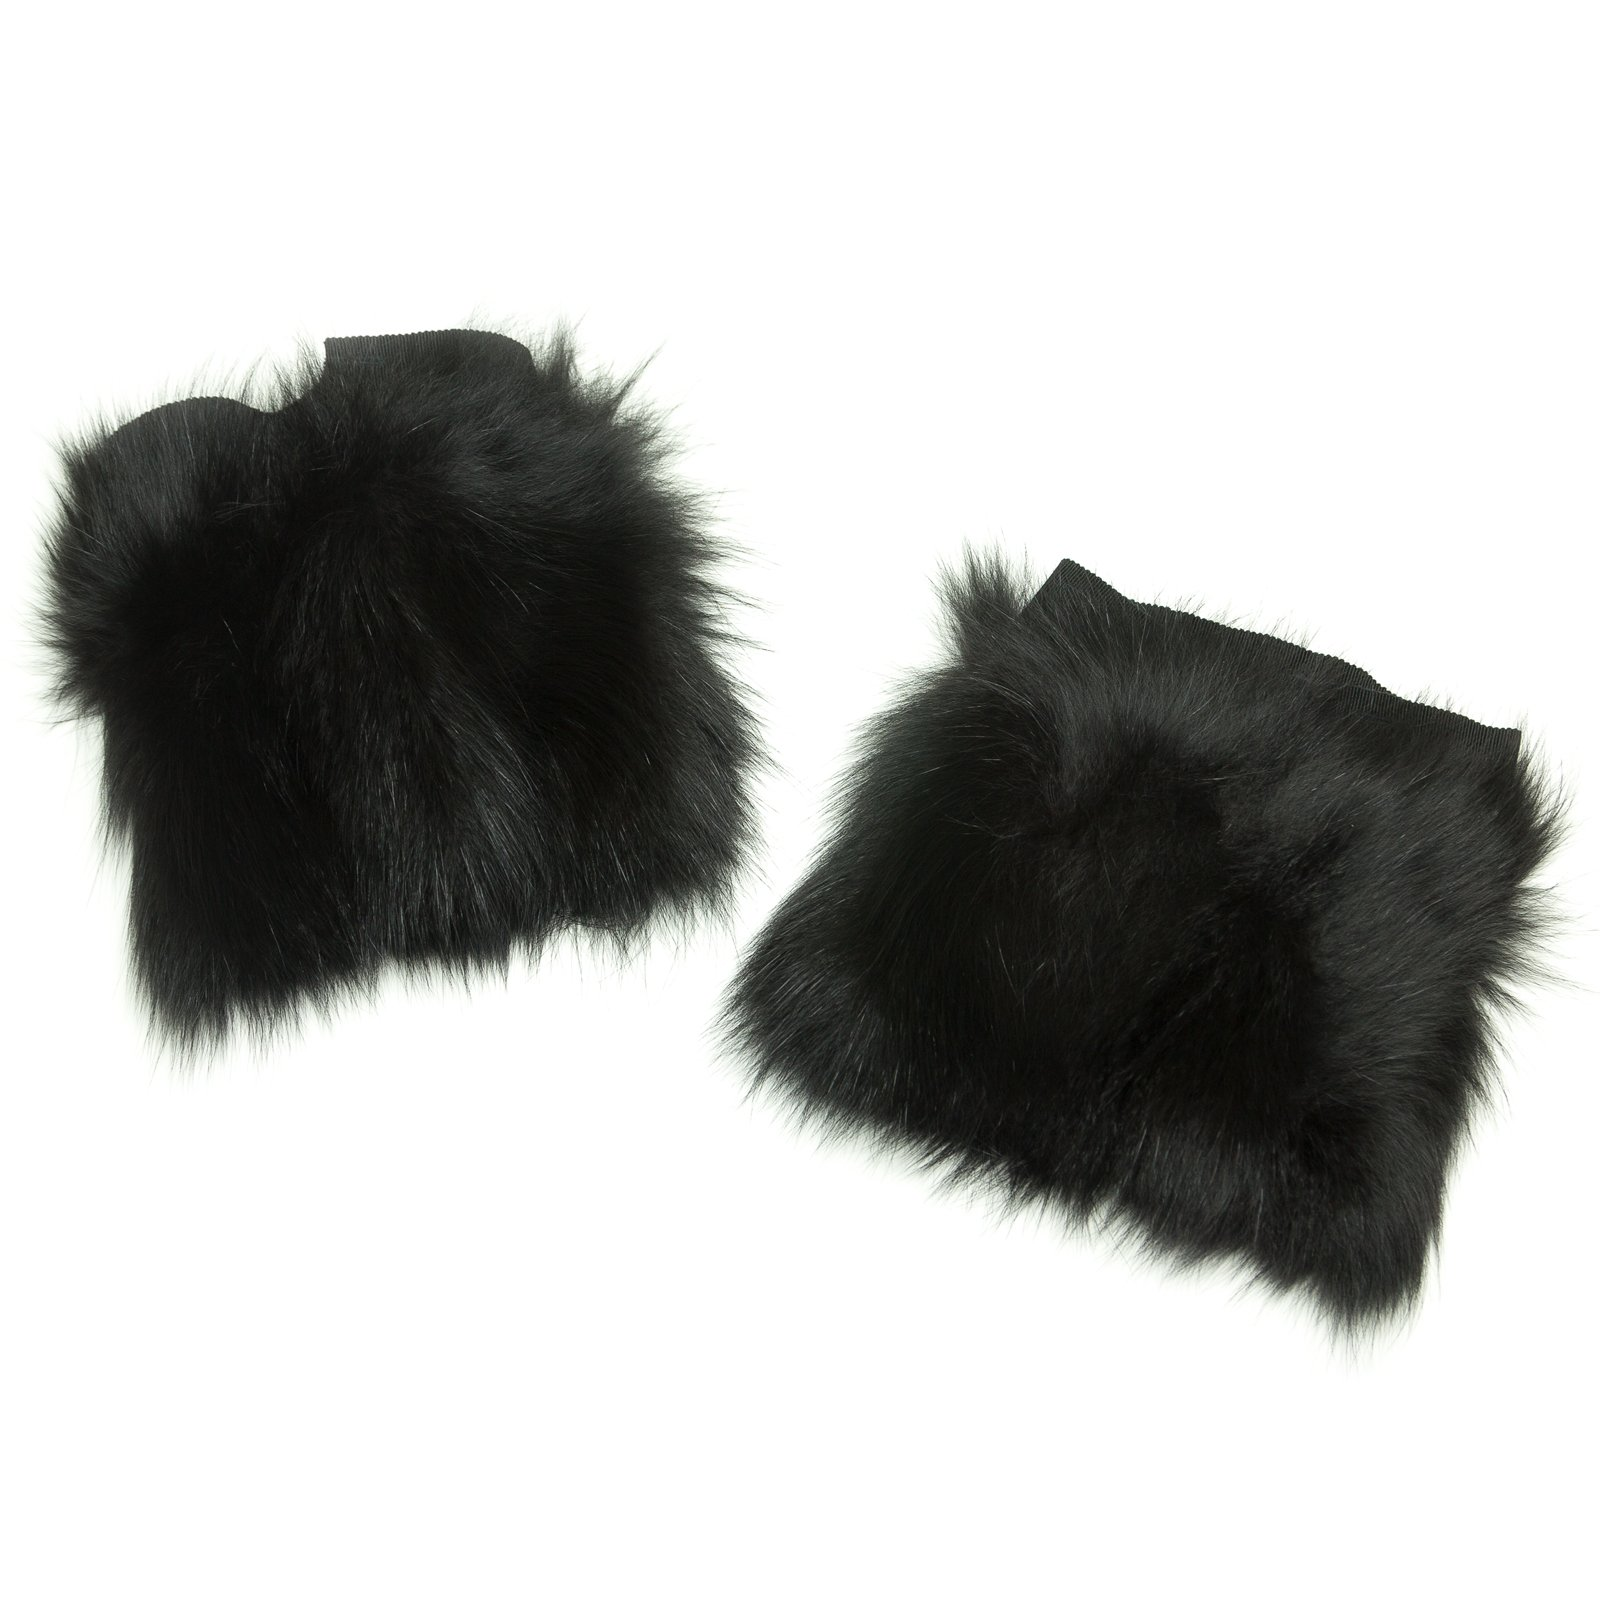 'S Max Mara Women's Barone Fox Fur Cuffs One Size Black by MaxMara